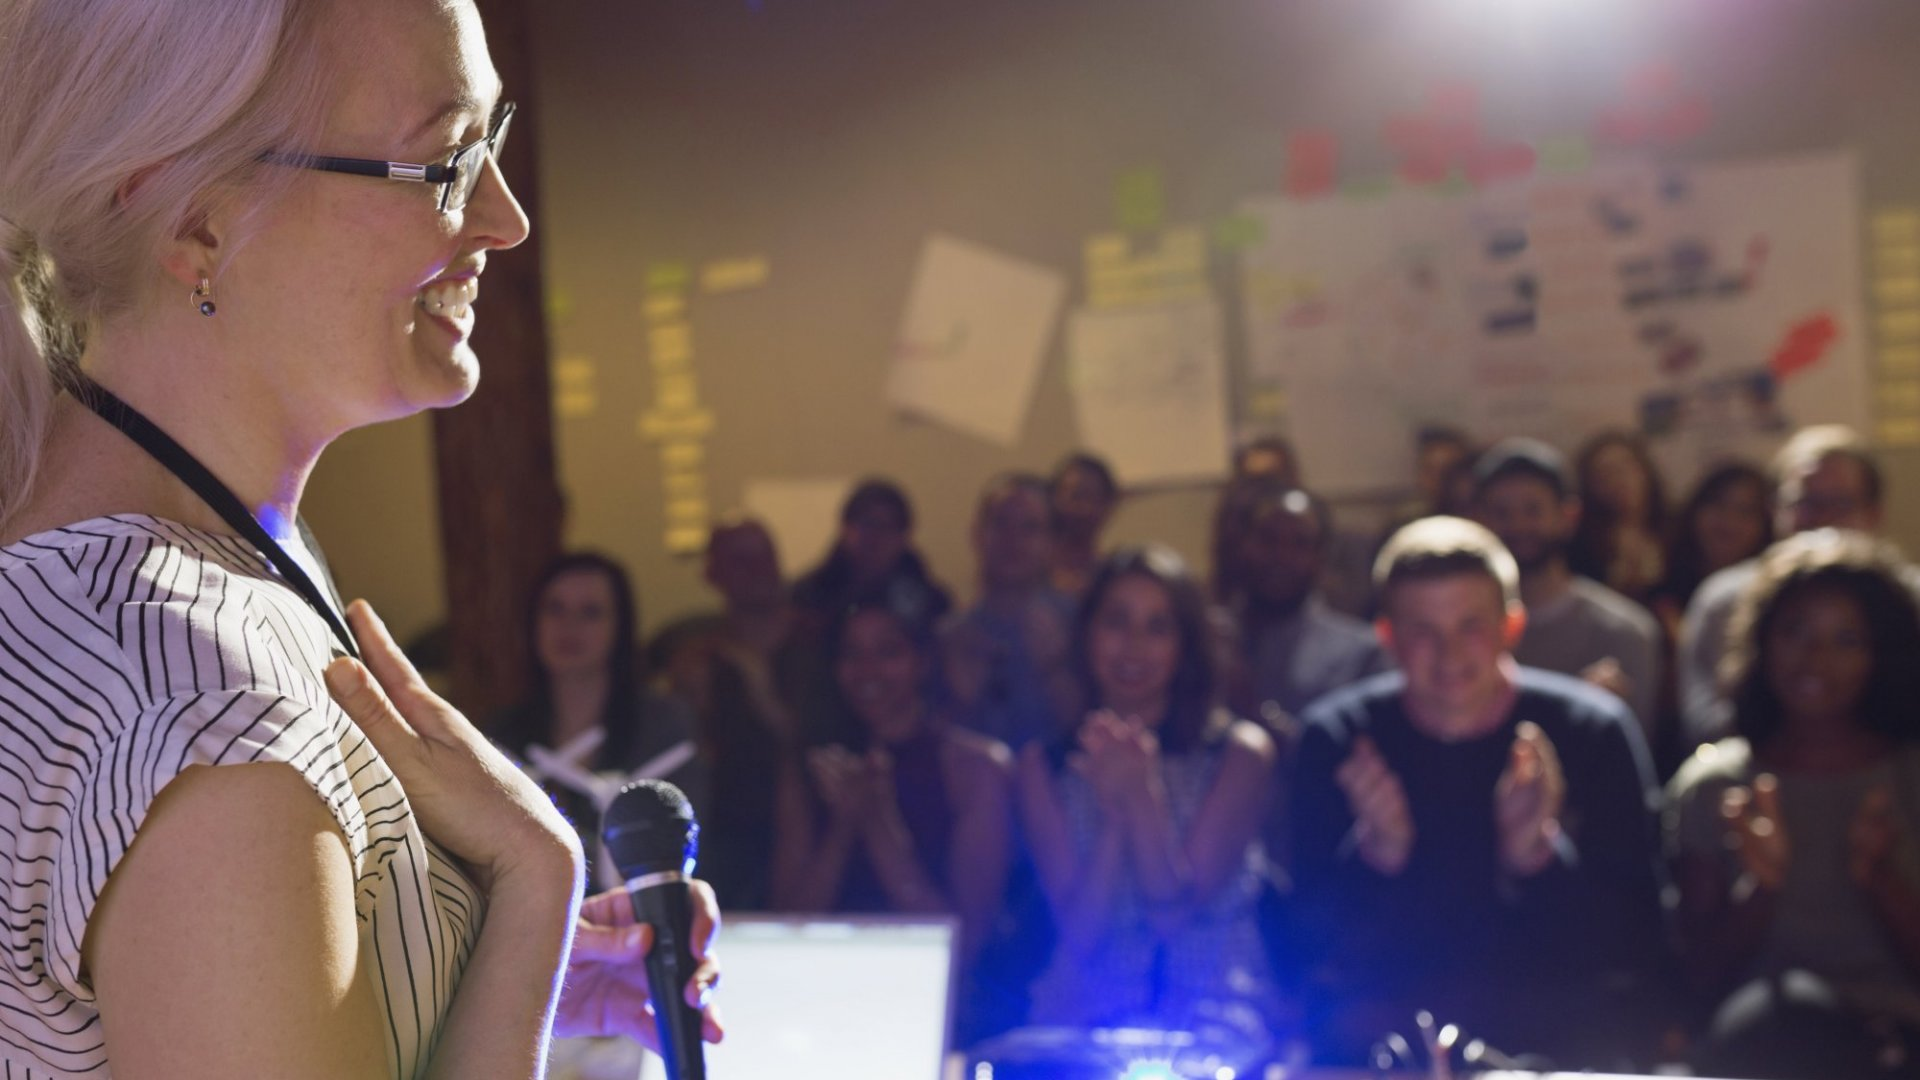 3 Simple Ways Introverts Can Conquer Public Speaking